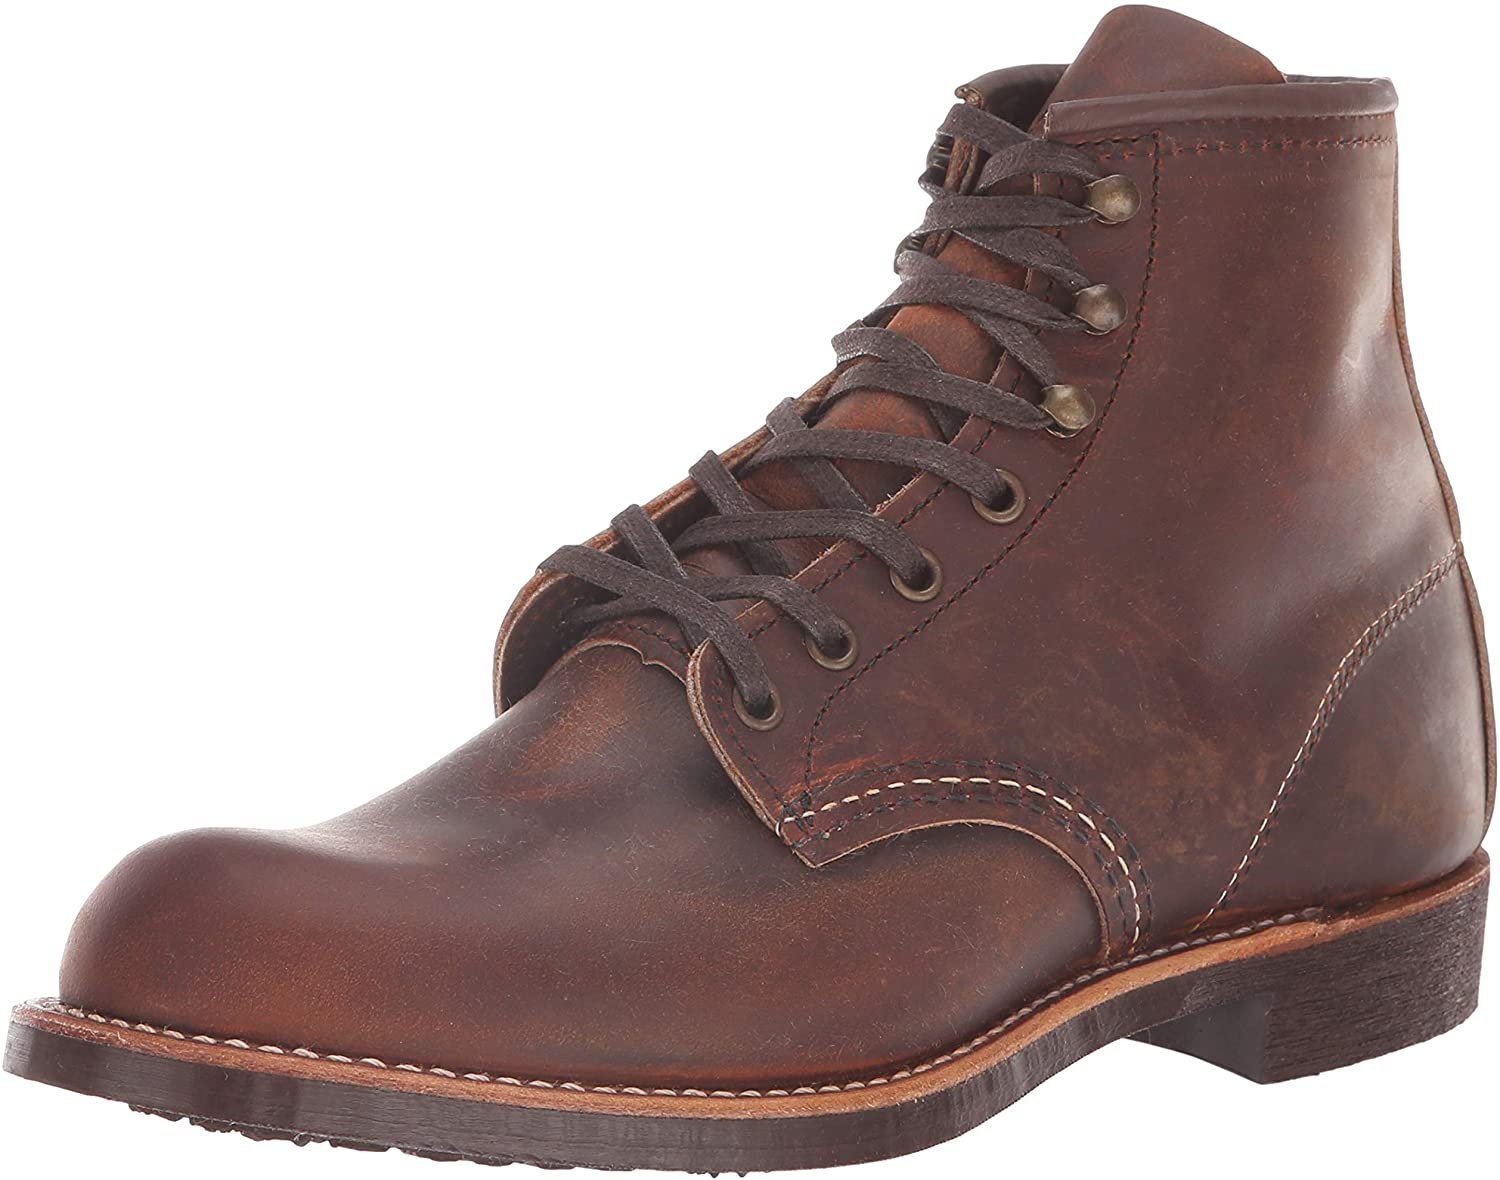 Edwardian Men's Shoes & Boots | 1900, 1910s Red Wing Heritage Mens Blacksmith Vibram Boot $289.95 AT vintagedancer.com